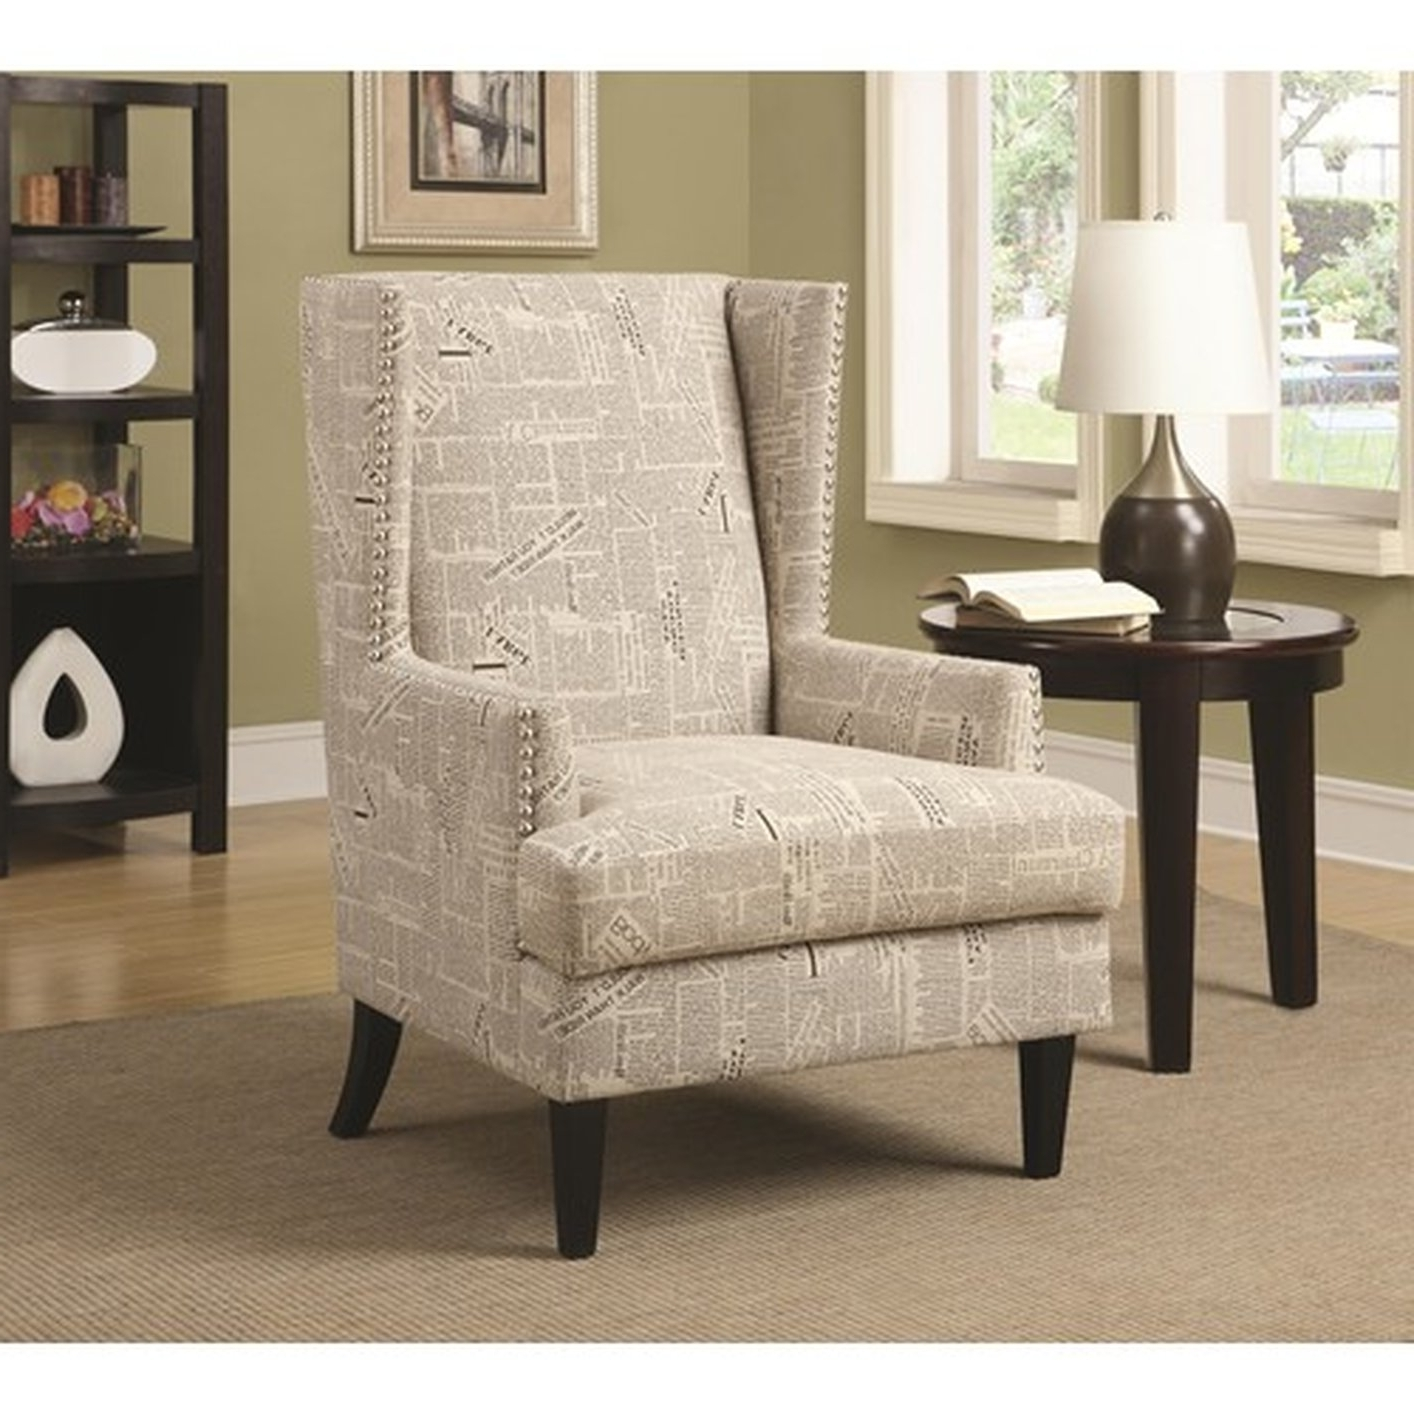 Accent Sofa Chairs Pertaining To Well Liked Accent Sofa Chair – House Decorations (View 3 of 15)